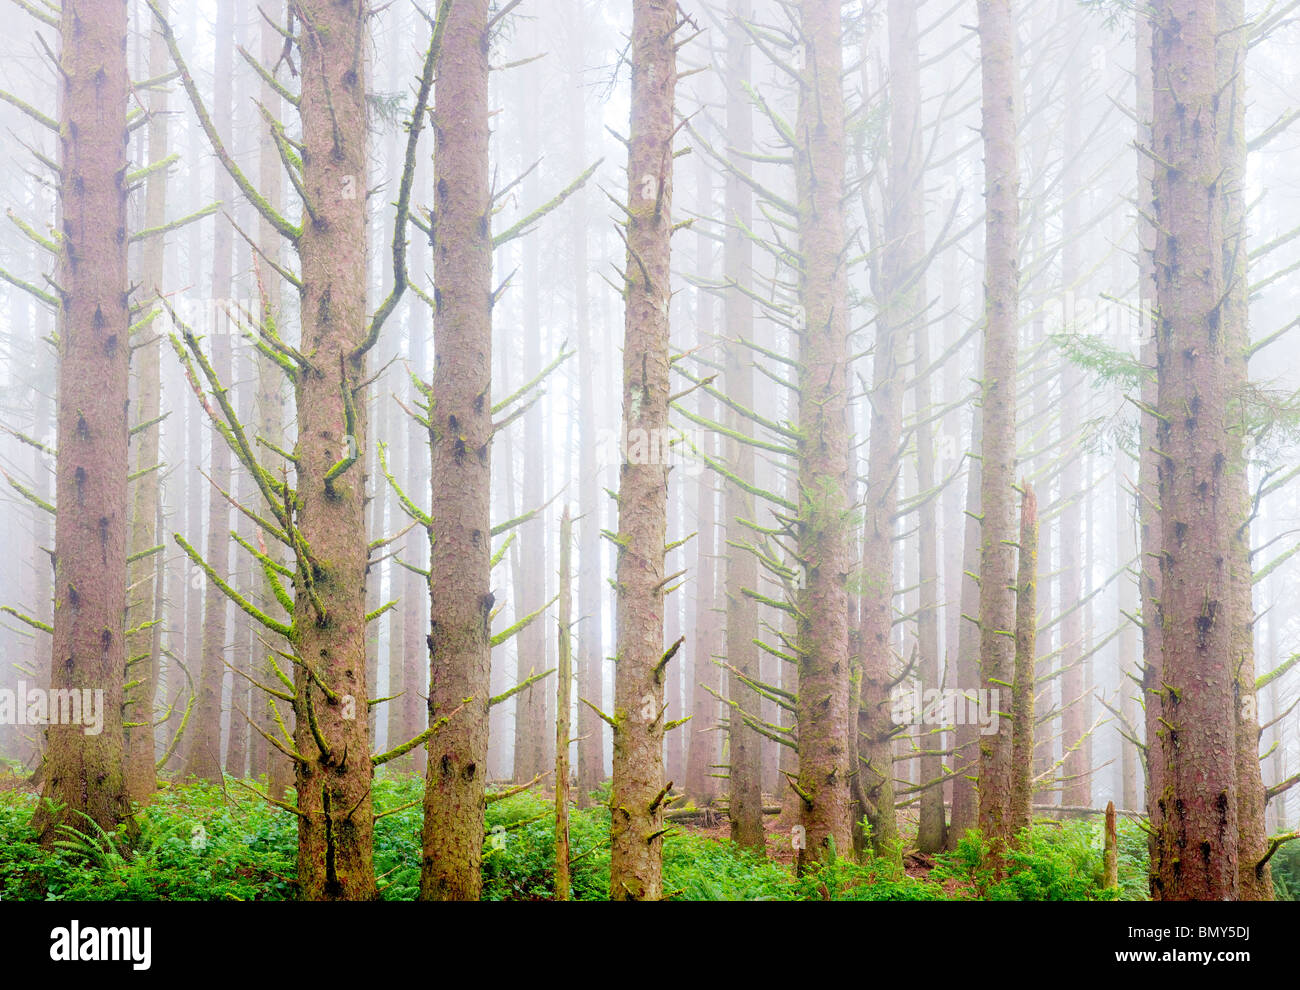 Sitka Spruce forest with fog on the oregon coast. Samuel H. Boardman State Scenic Corridor. Oregon - Stock Image